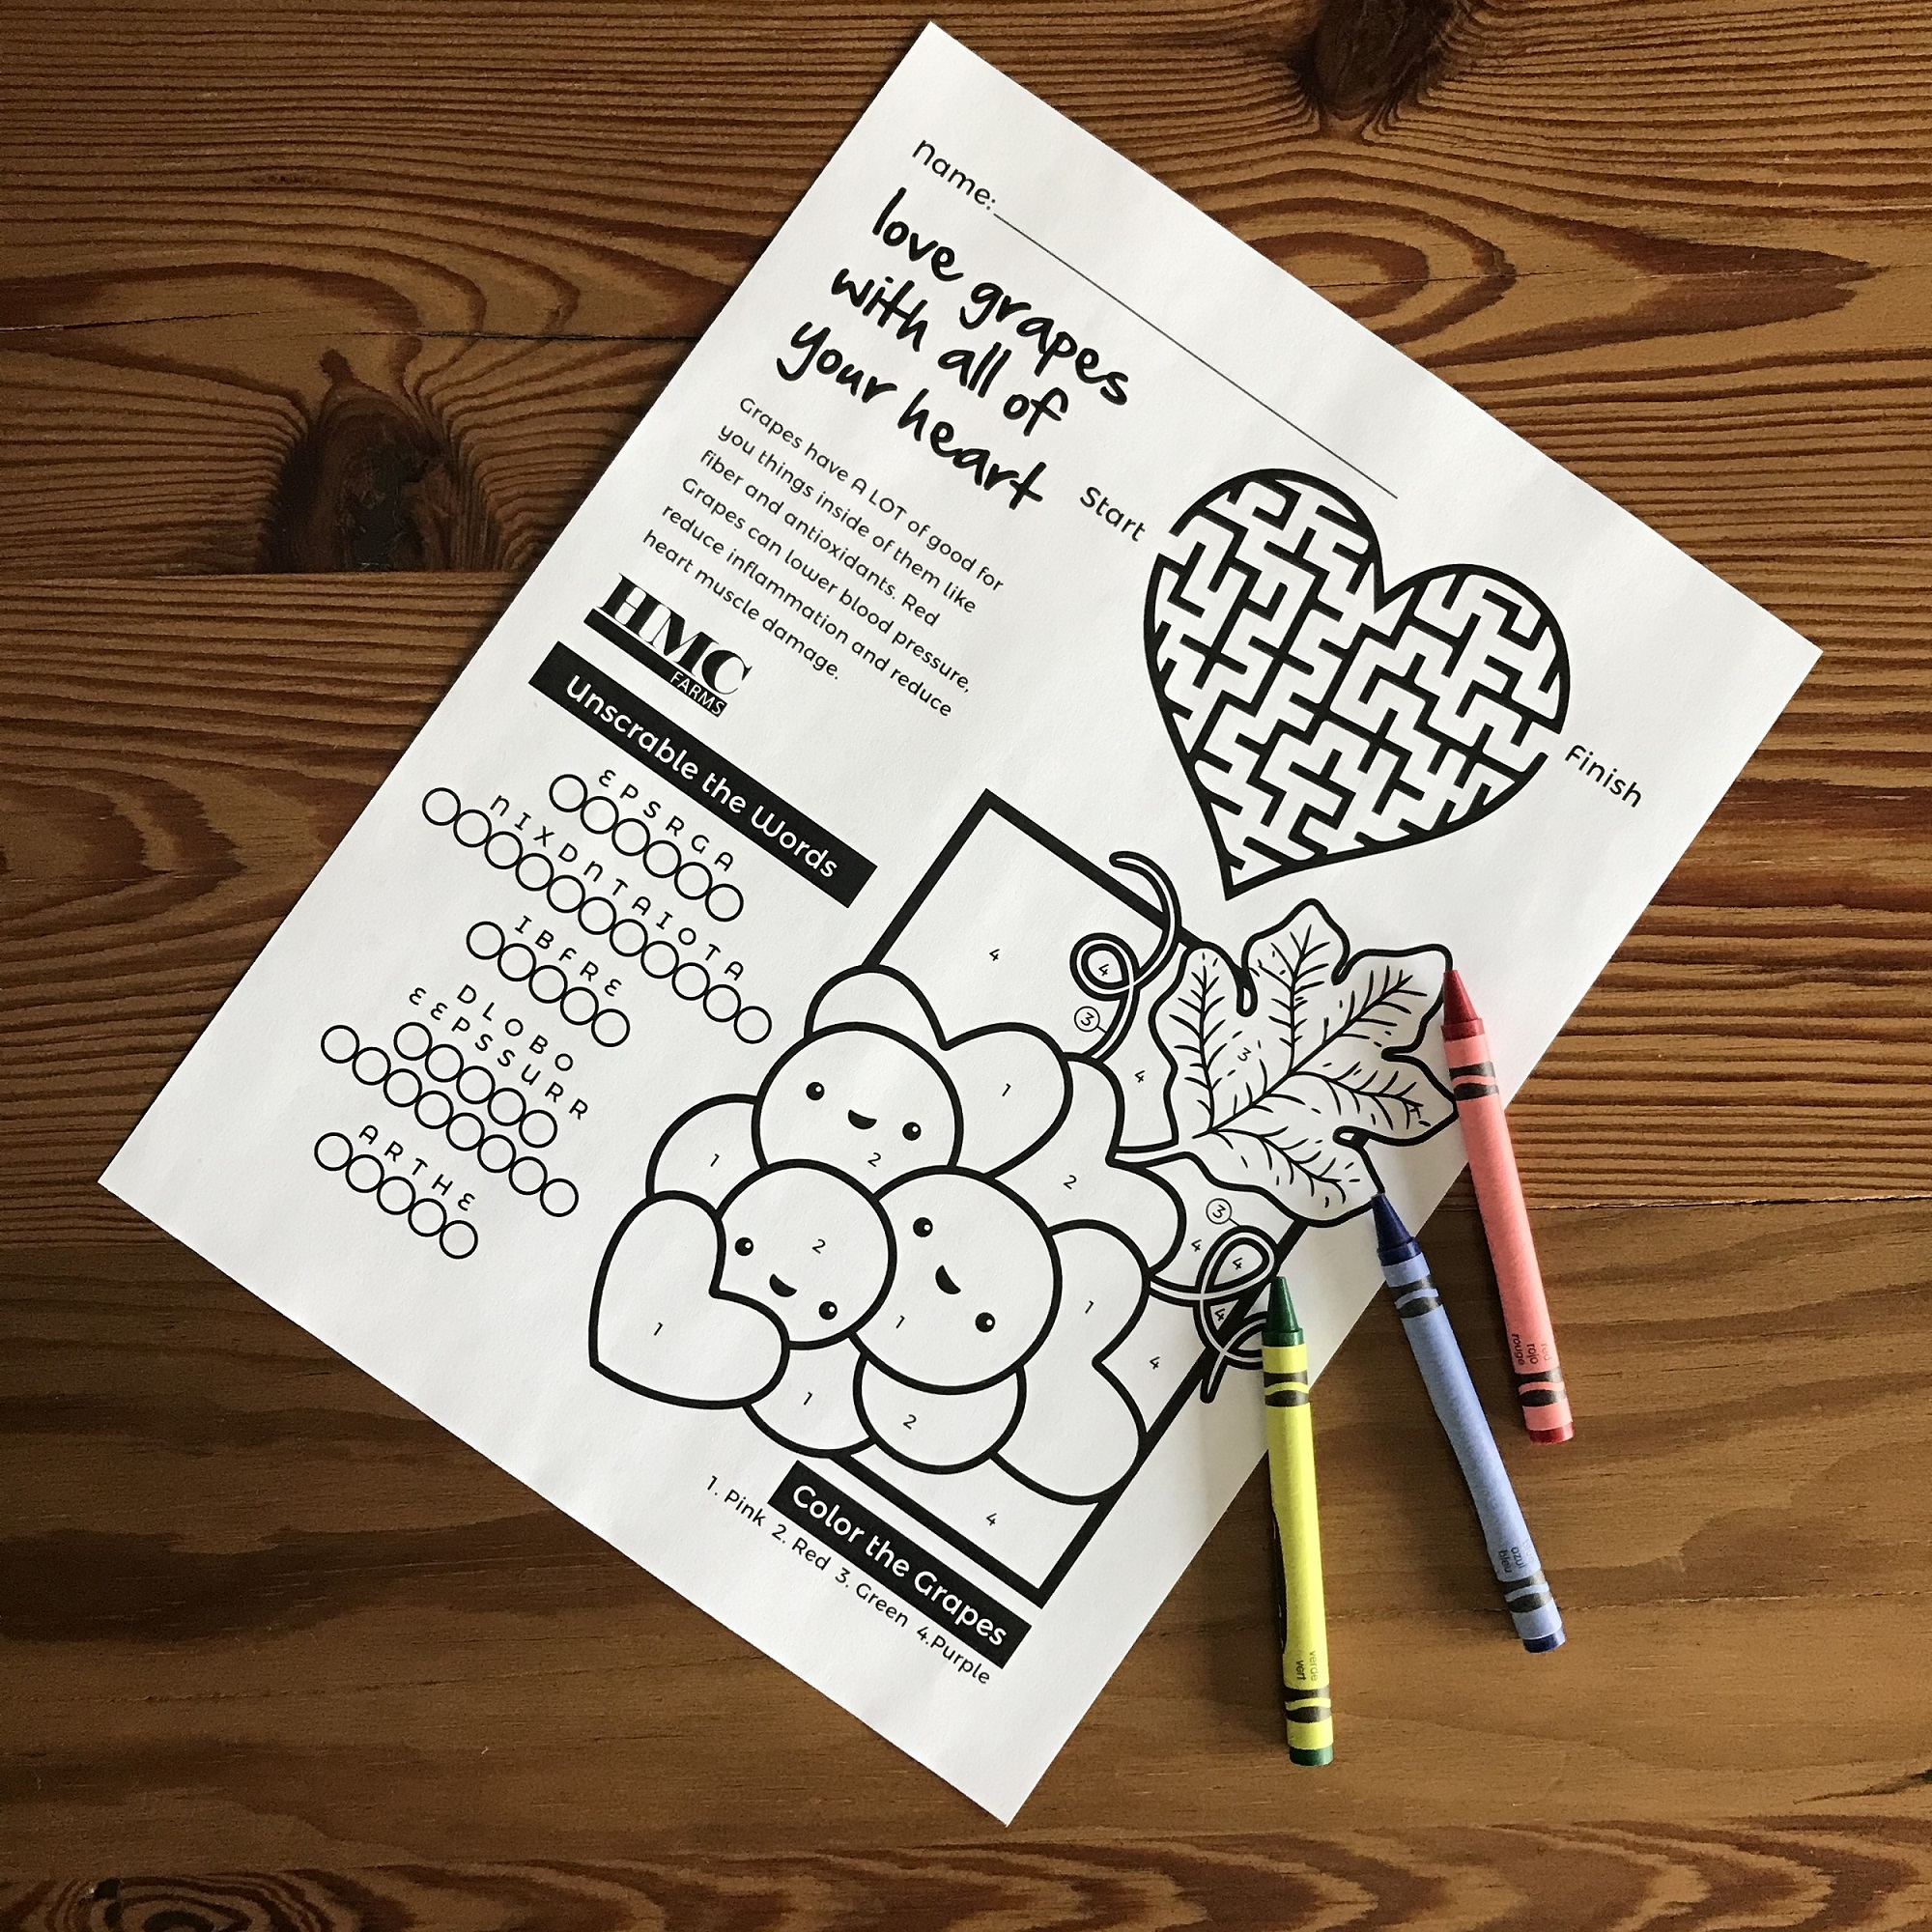 Free Downloadable Activity Sheets for Kids